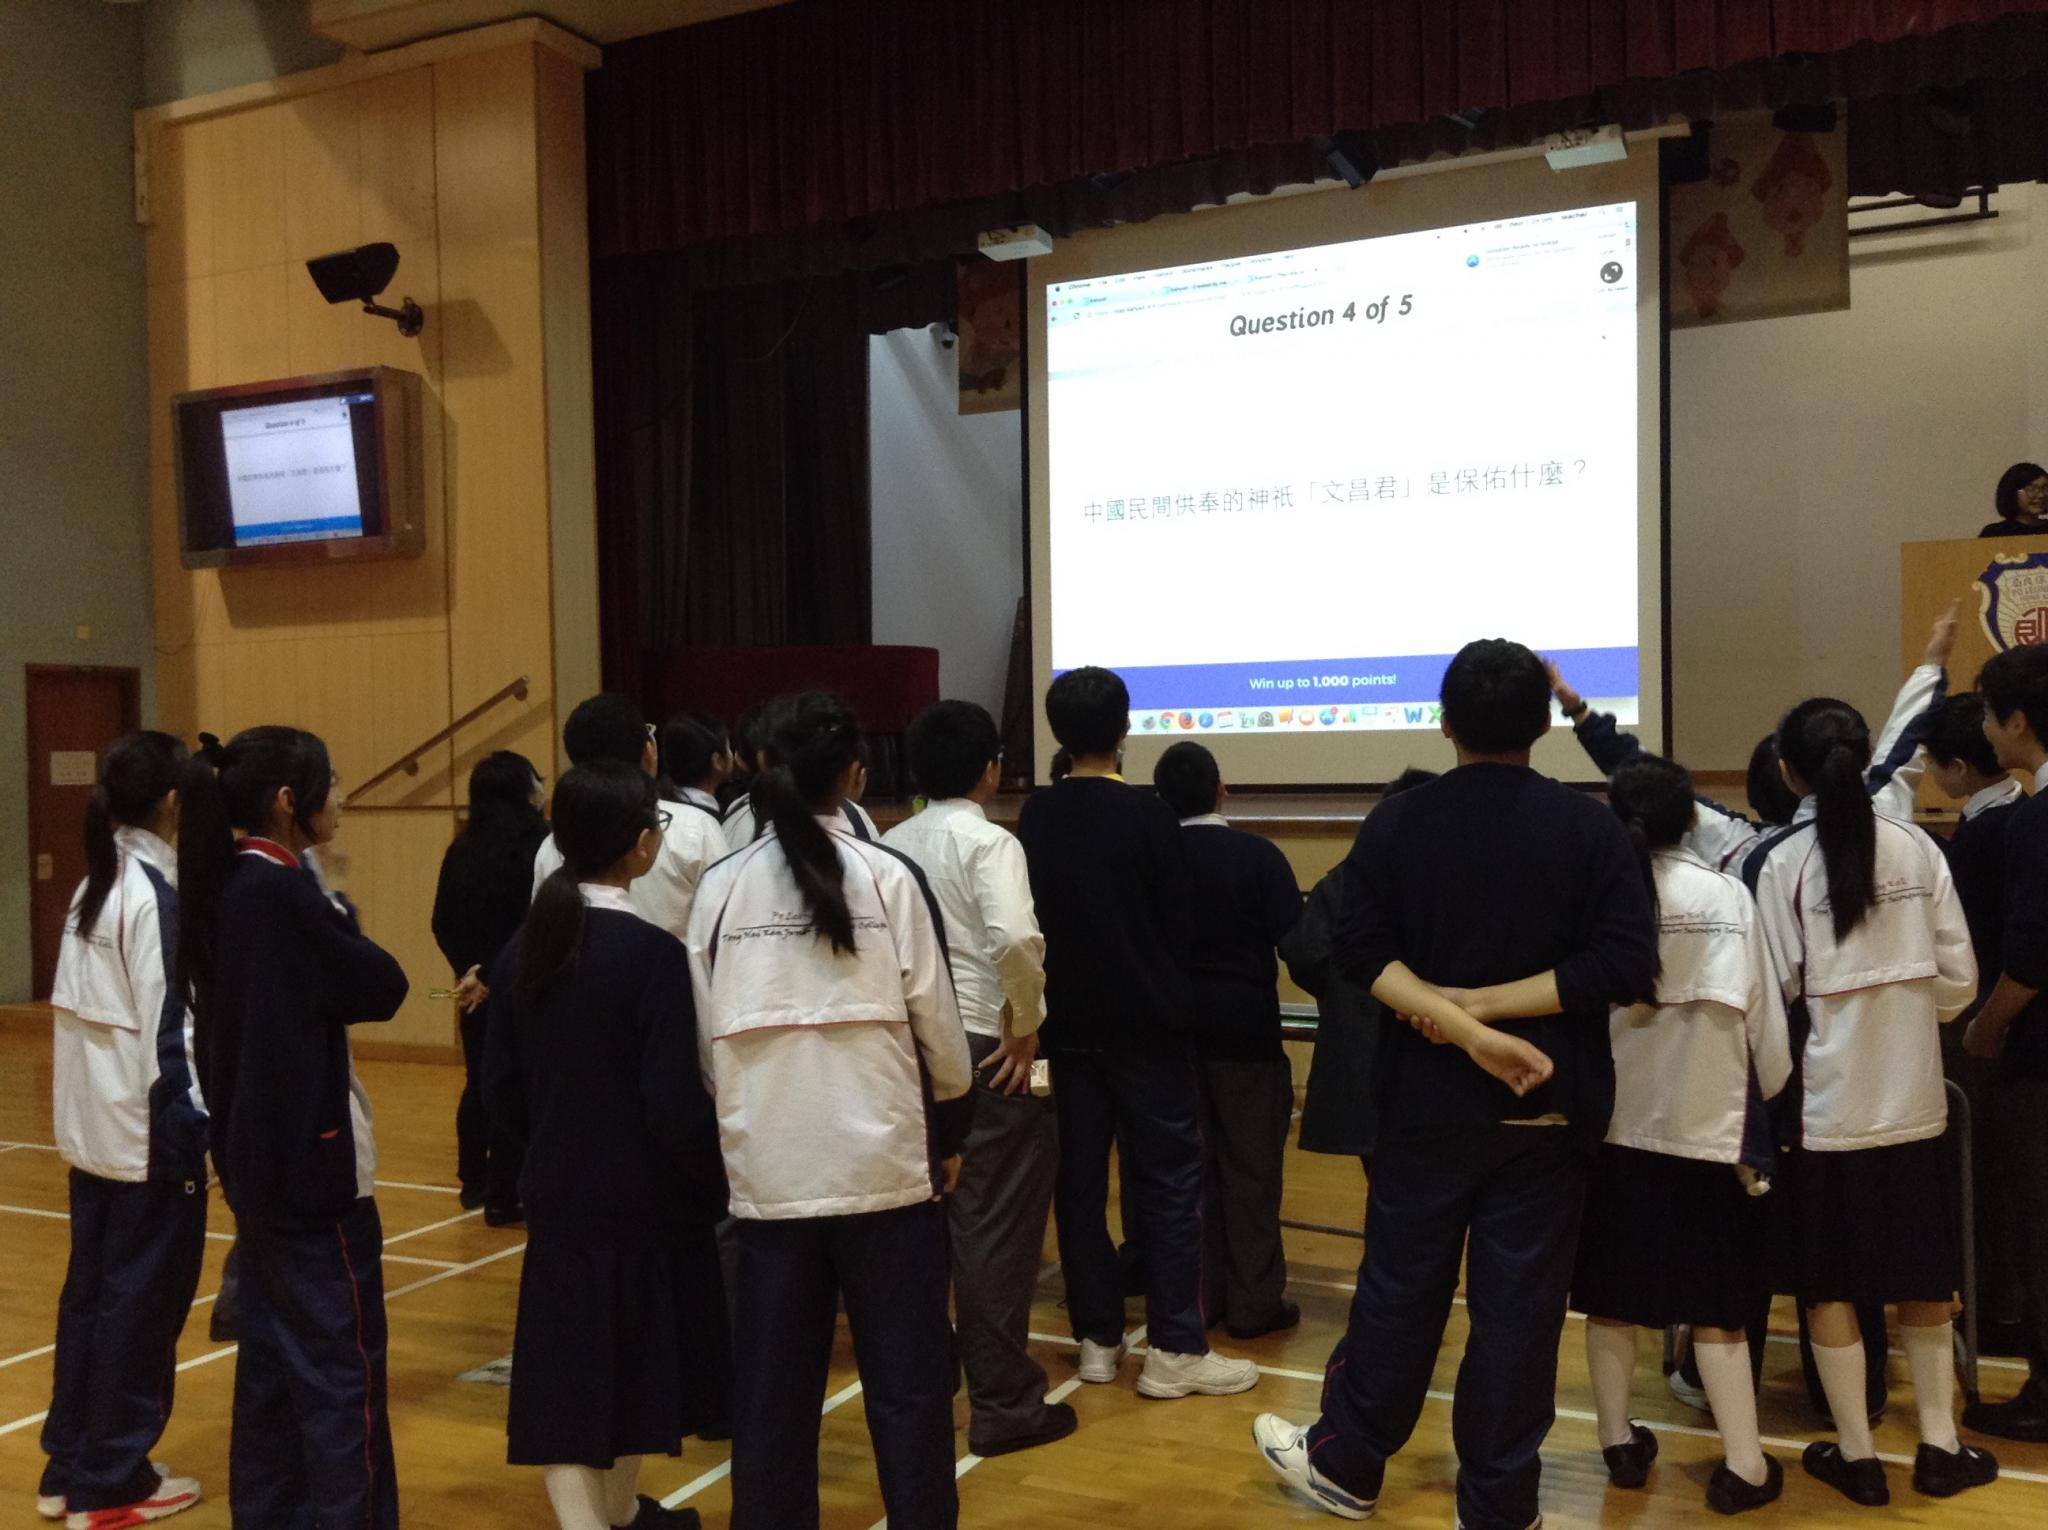 Students are queuing for the interesting and exciting activity.